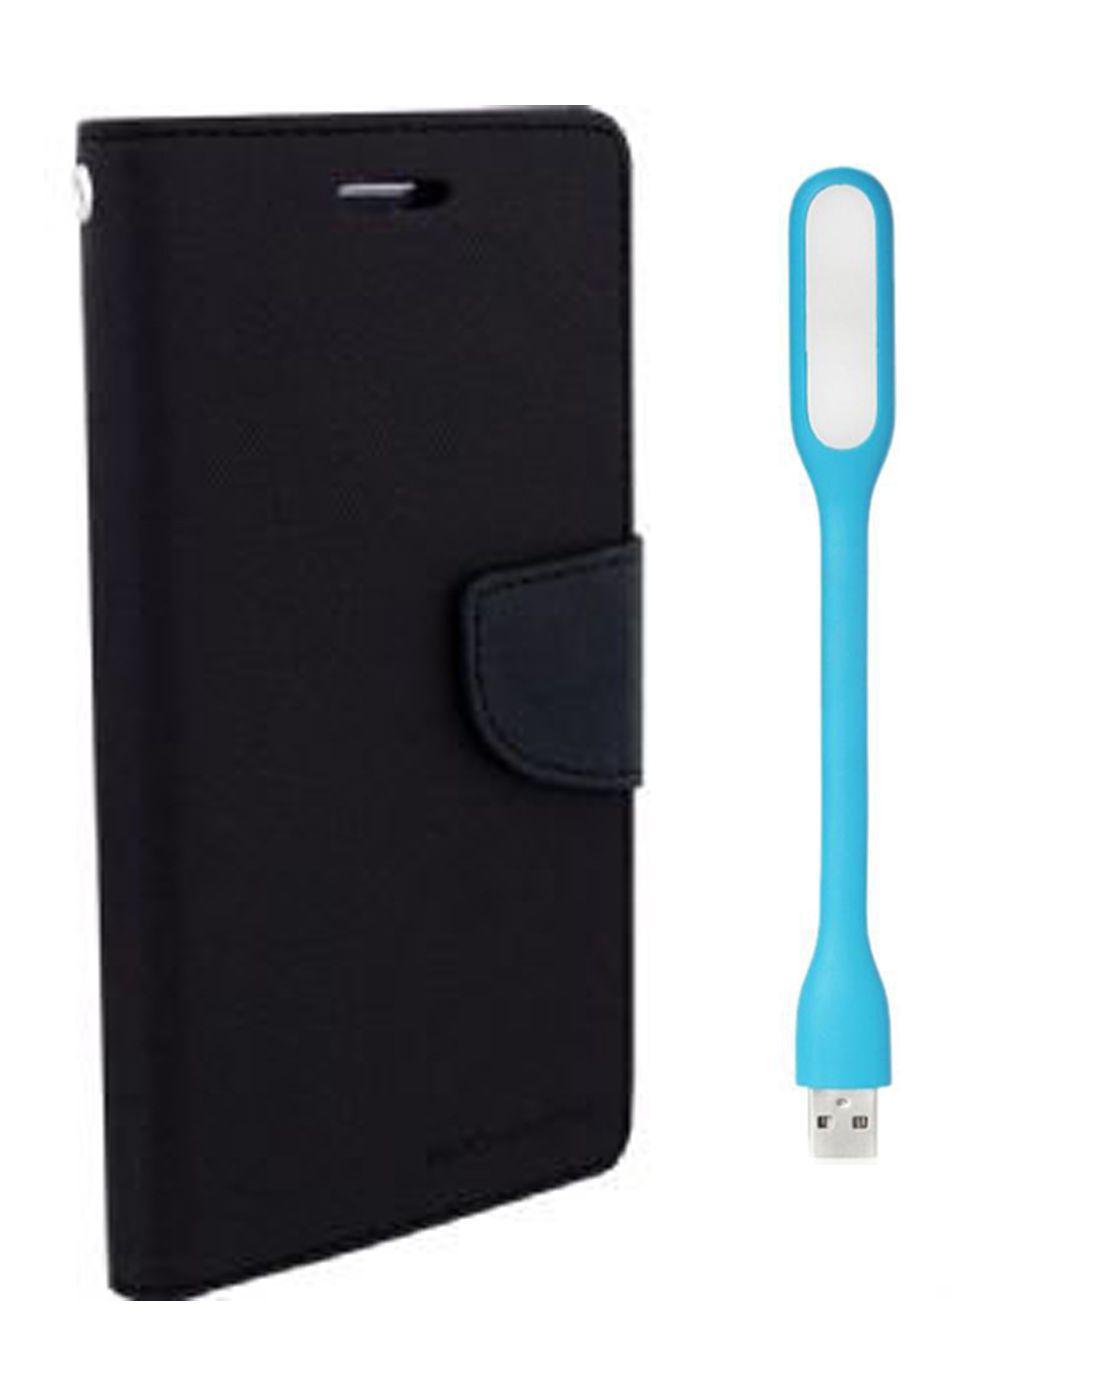 Wallet Flip Case Back Cover For Samsung G350 -(Black) + Flexible Mini LED Stick Lamp Light By Style Crome